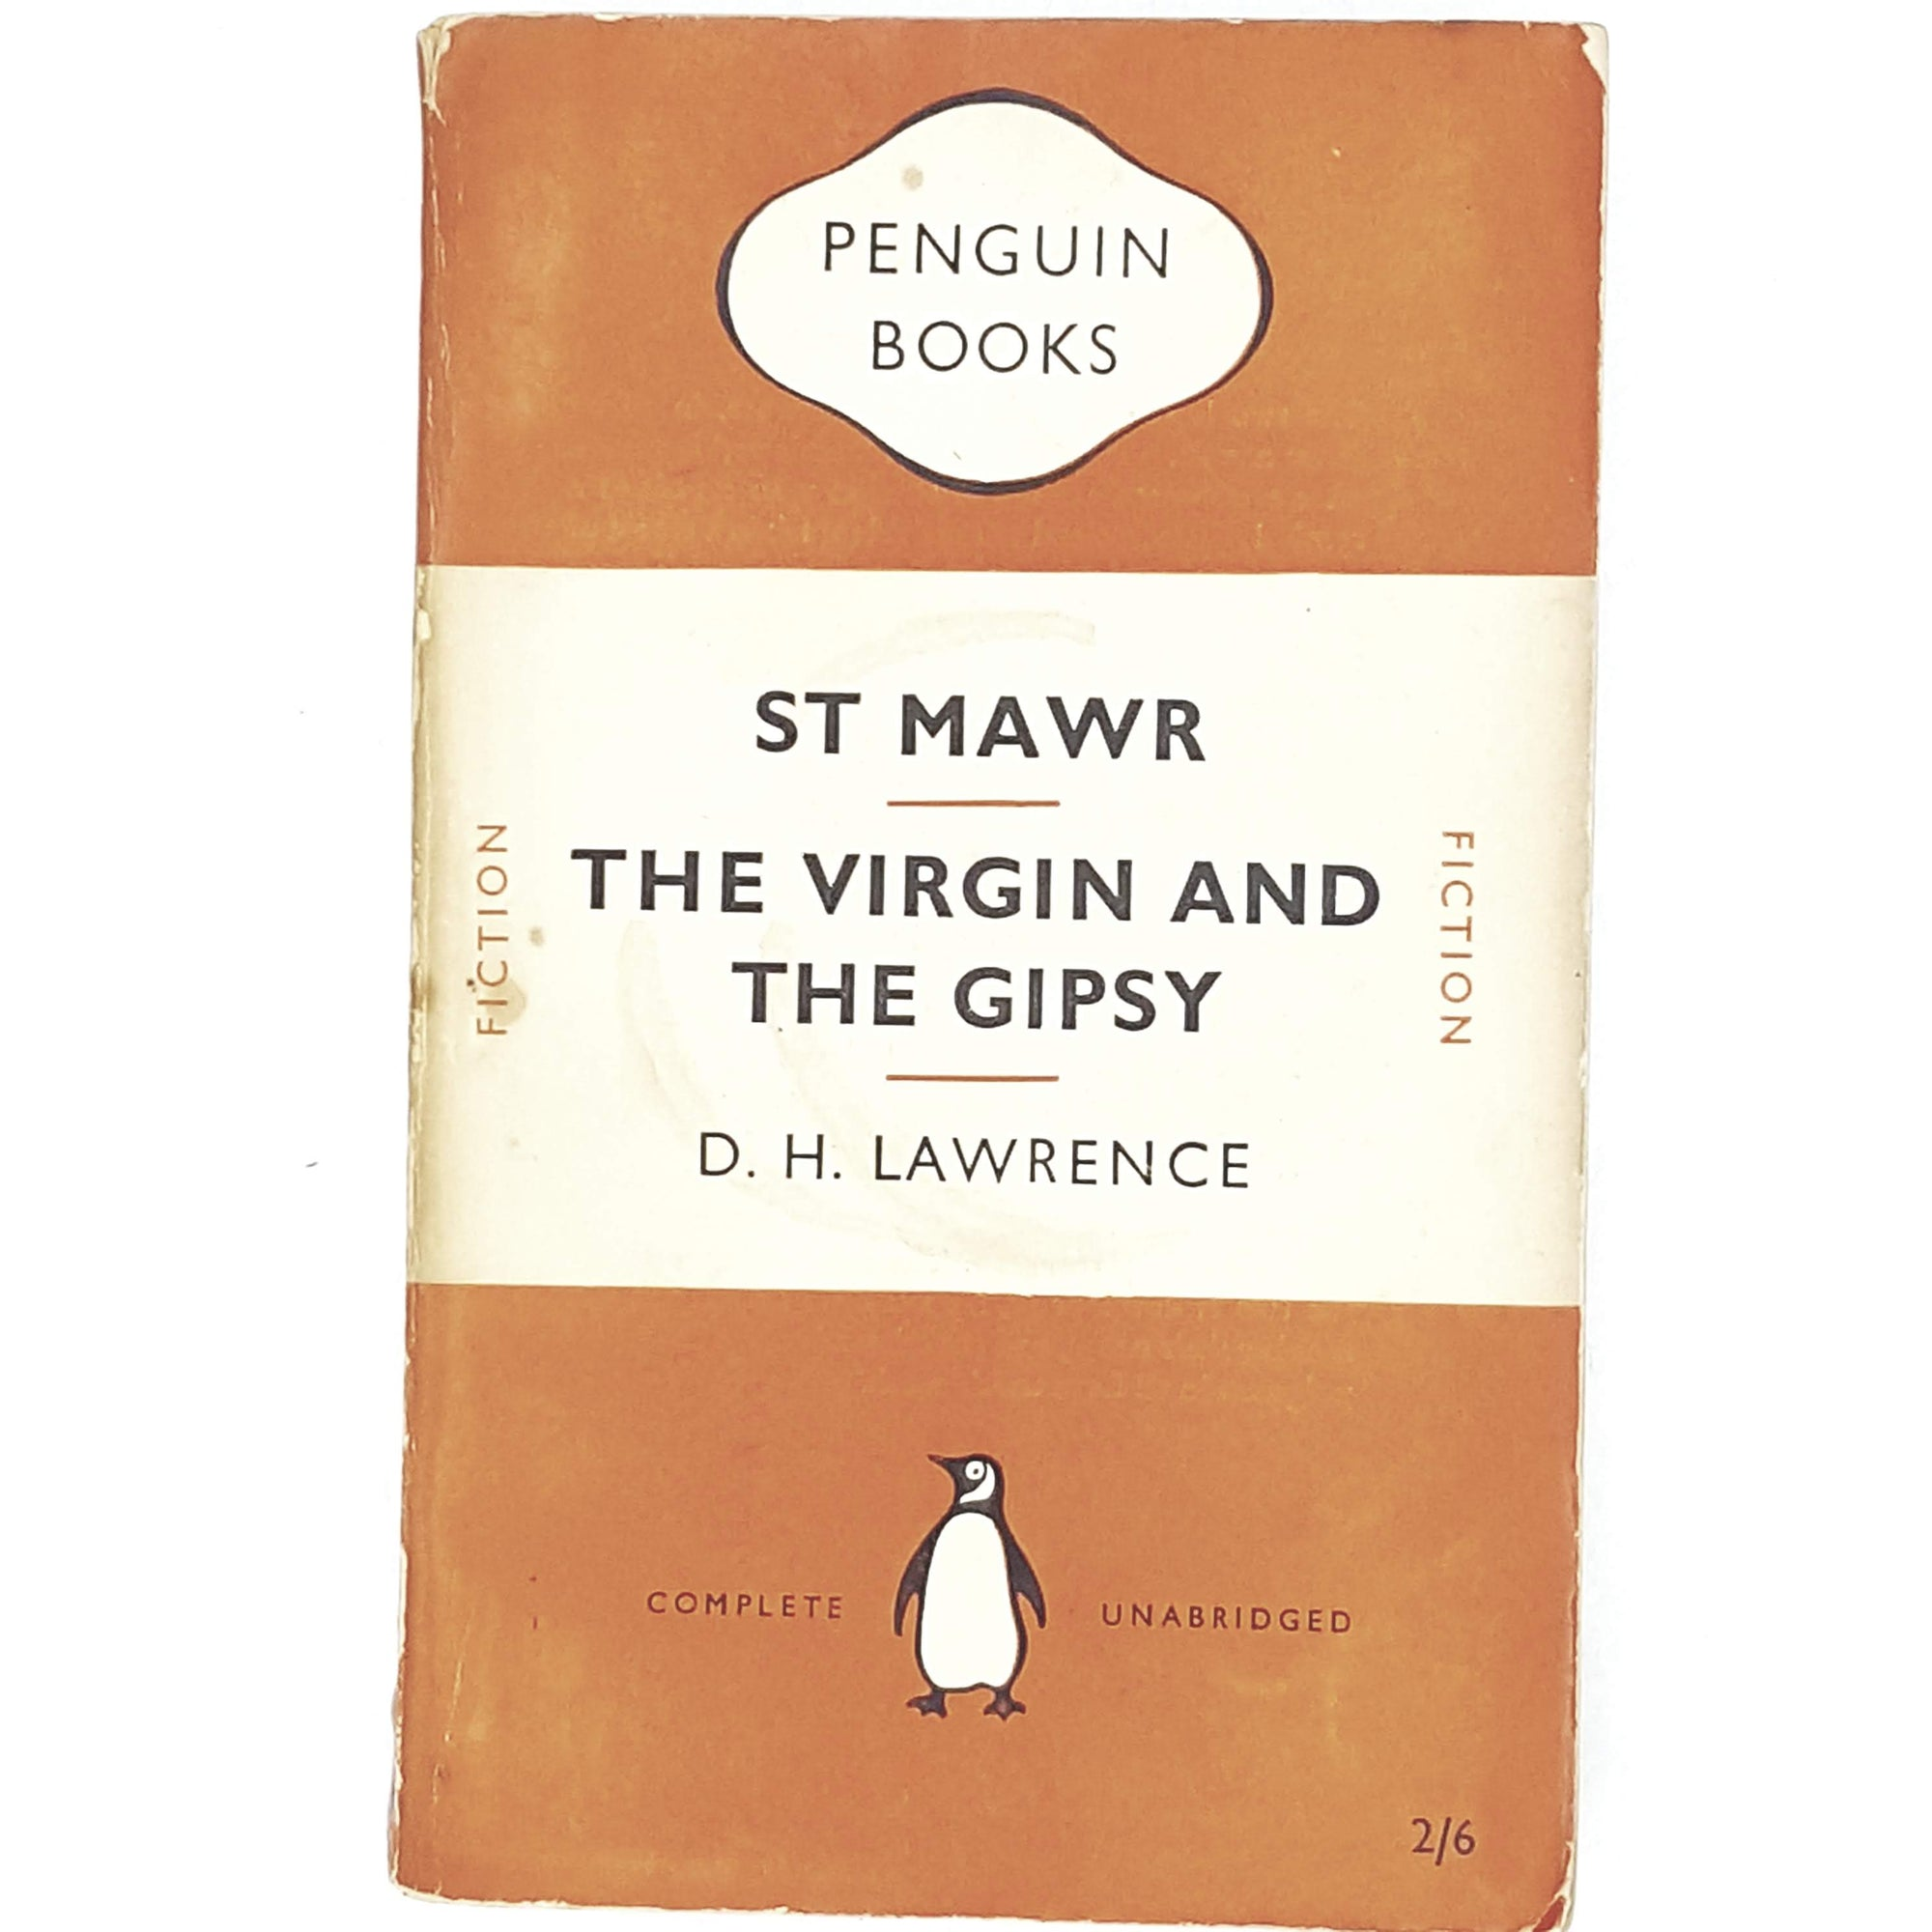 D. H. Lawrence's St. Mawr and The Virgin and the Gipsy 1951